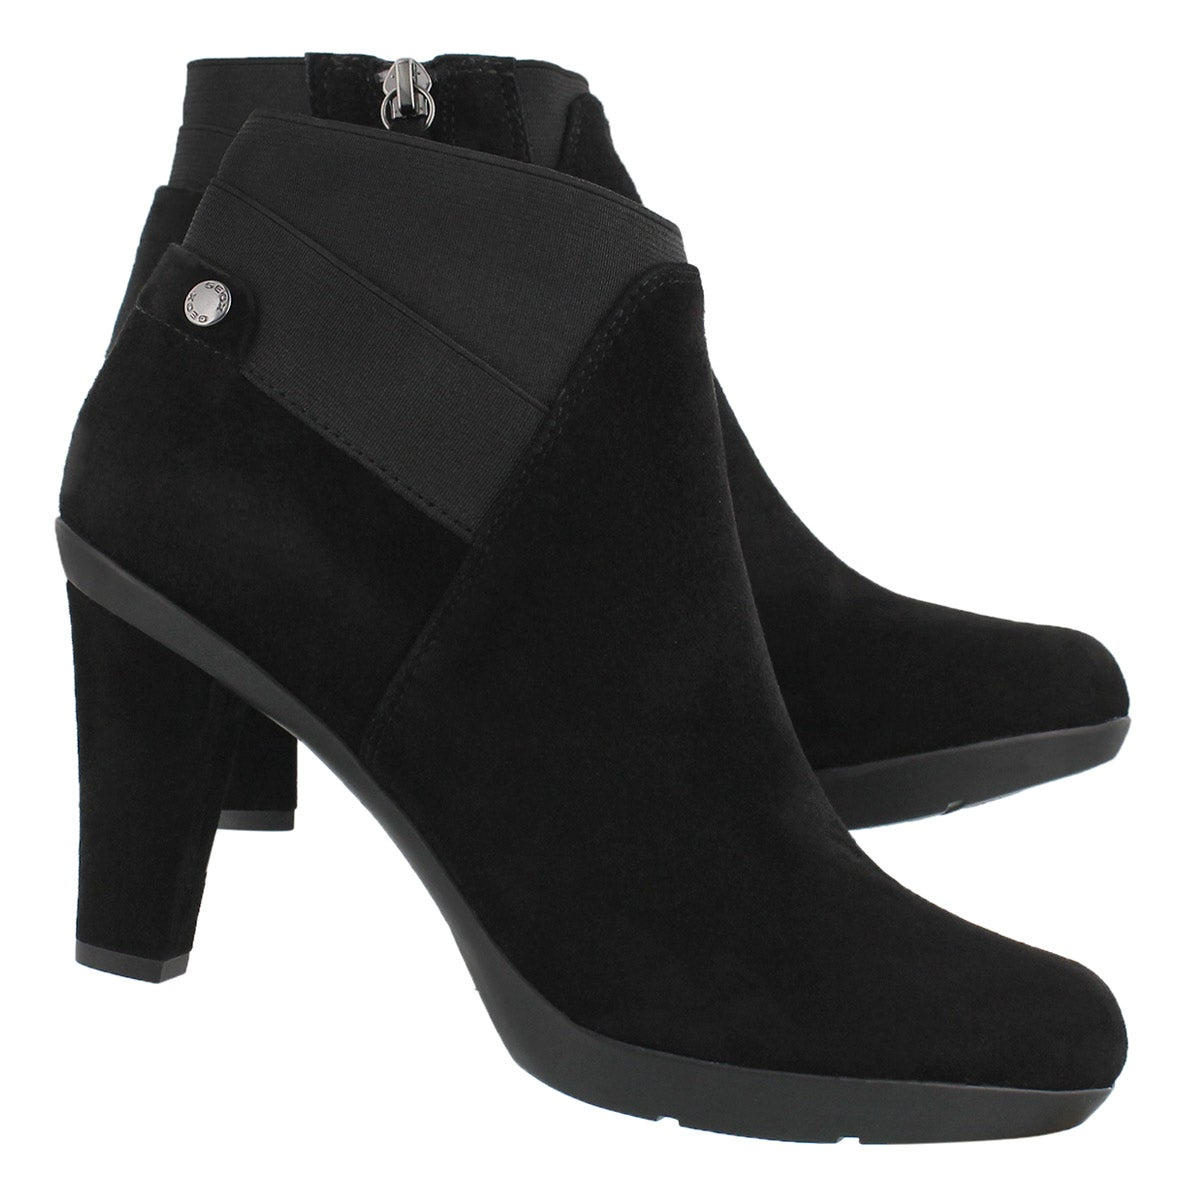 Lds Inspiration Stiv blk sde ankle boot